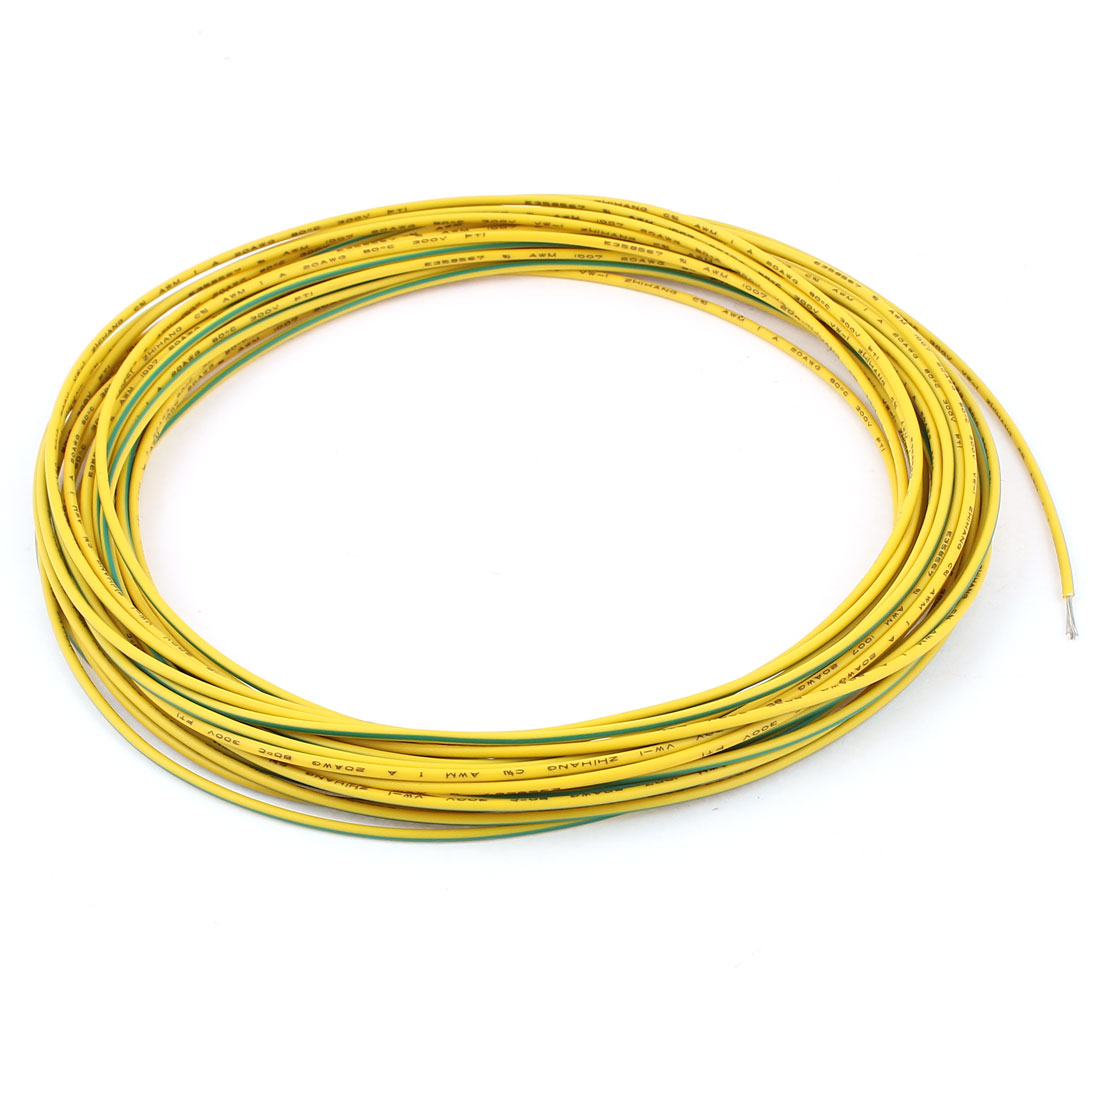 20Awg Tin Plated Stranded Wires Ul-1007 Electronic Wire Cable 5 Meter(China (Mainland))